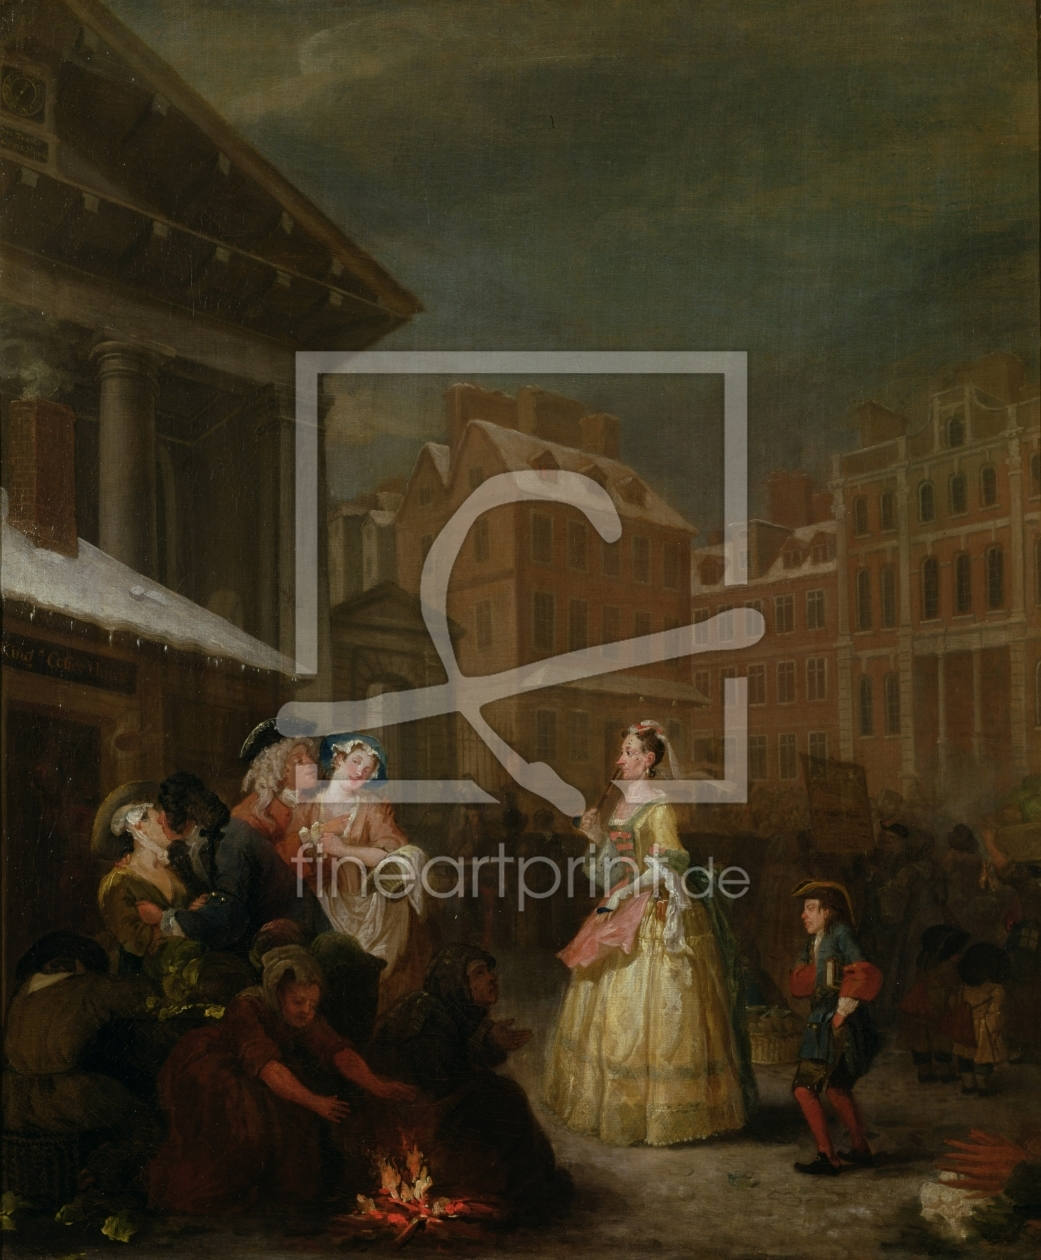 Bild-Nr.: 31000649 The Four Times of Day: Morning, 1736 erstellt von Hogarth, William